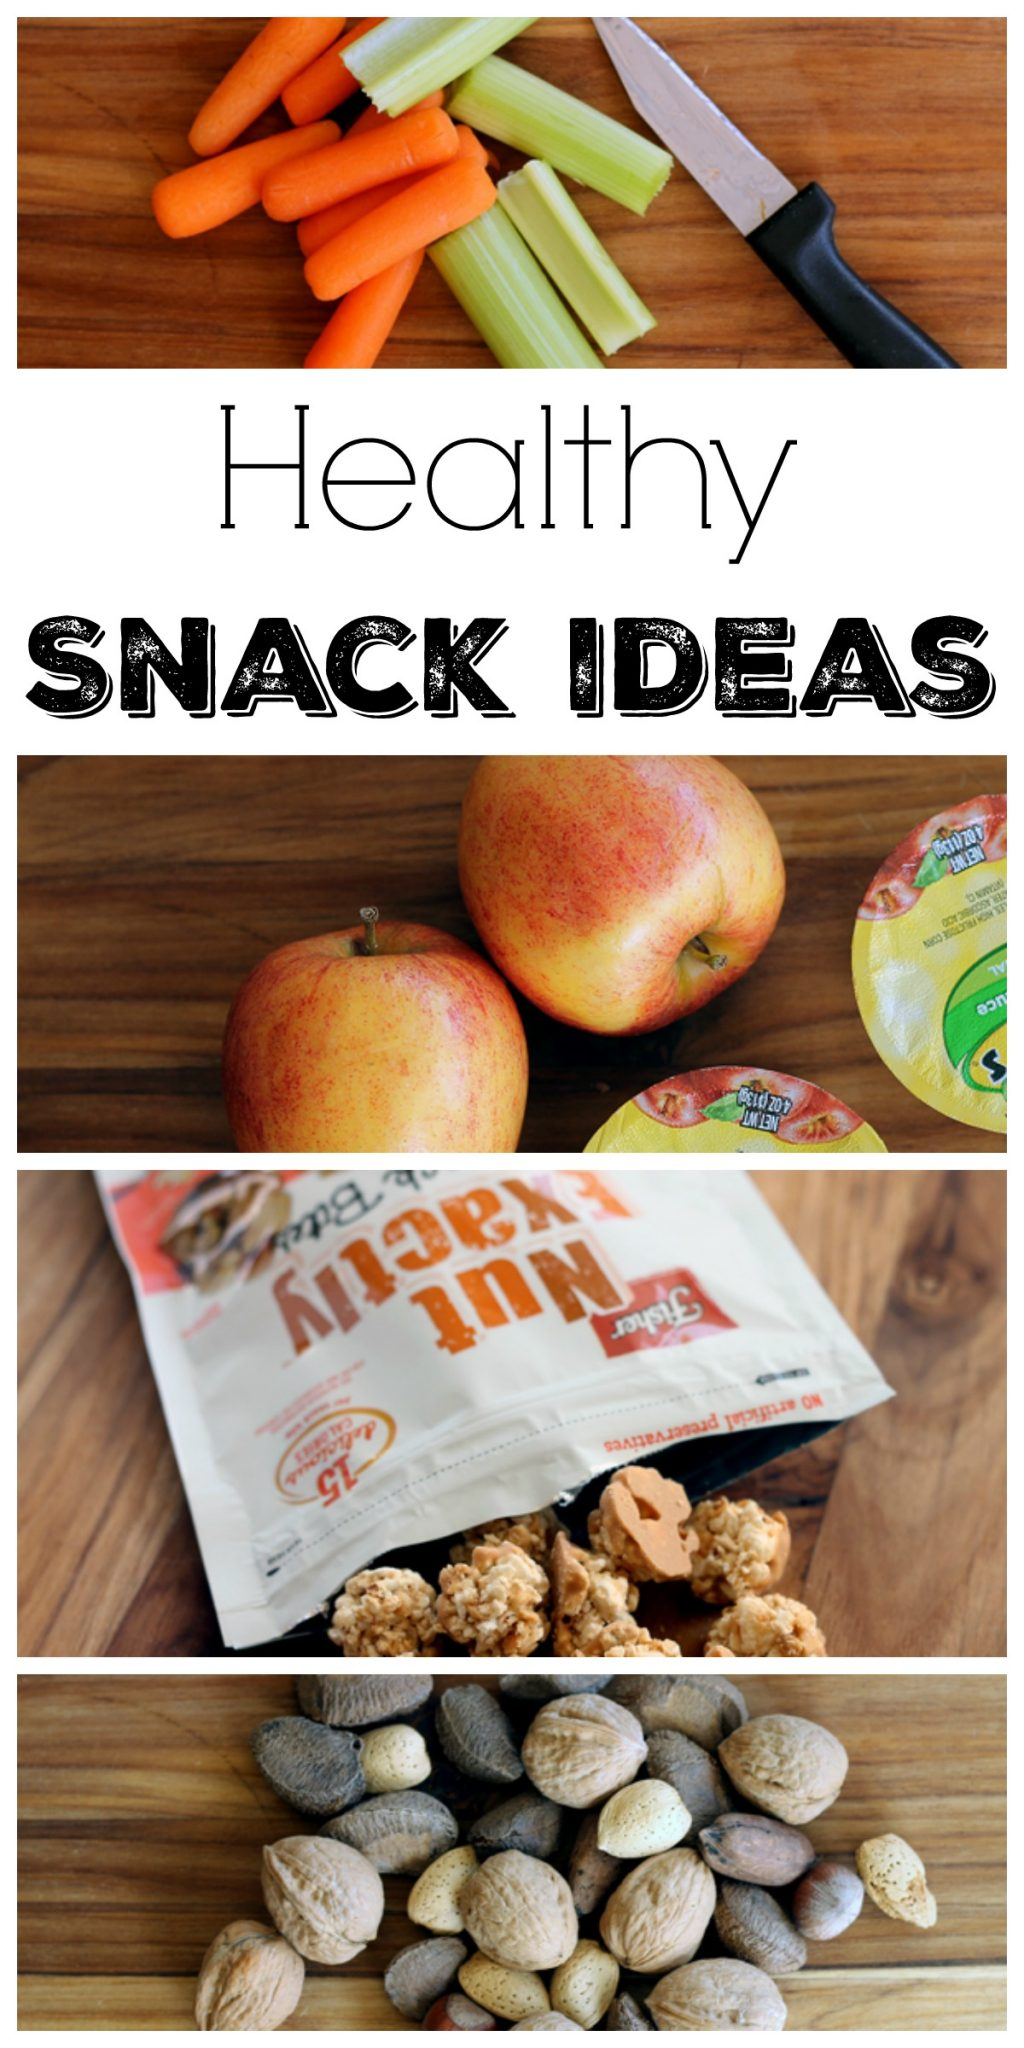 You will love these healthy snack ideas for your family! Get ideas for kids and adults in one place!